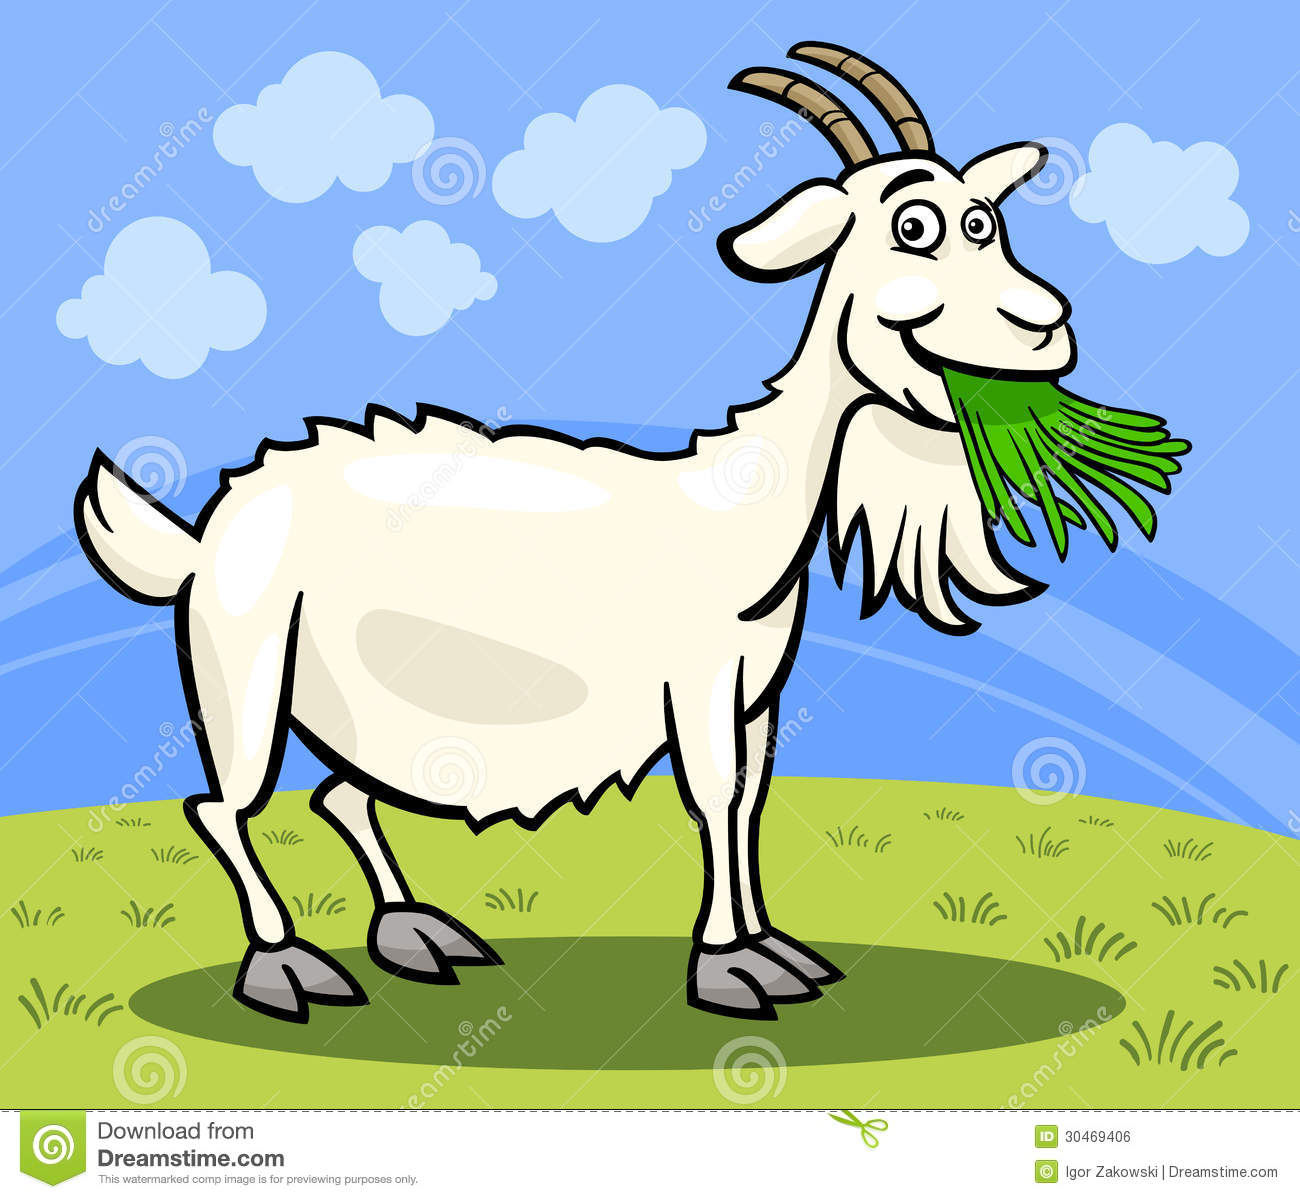 ... Animal Cartoon Illustration Royalty Free Stock Image - Image: 30469406